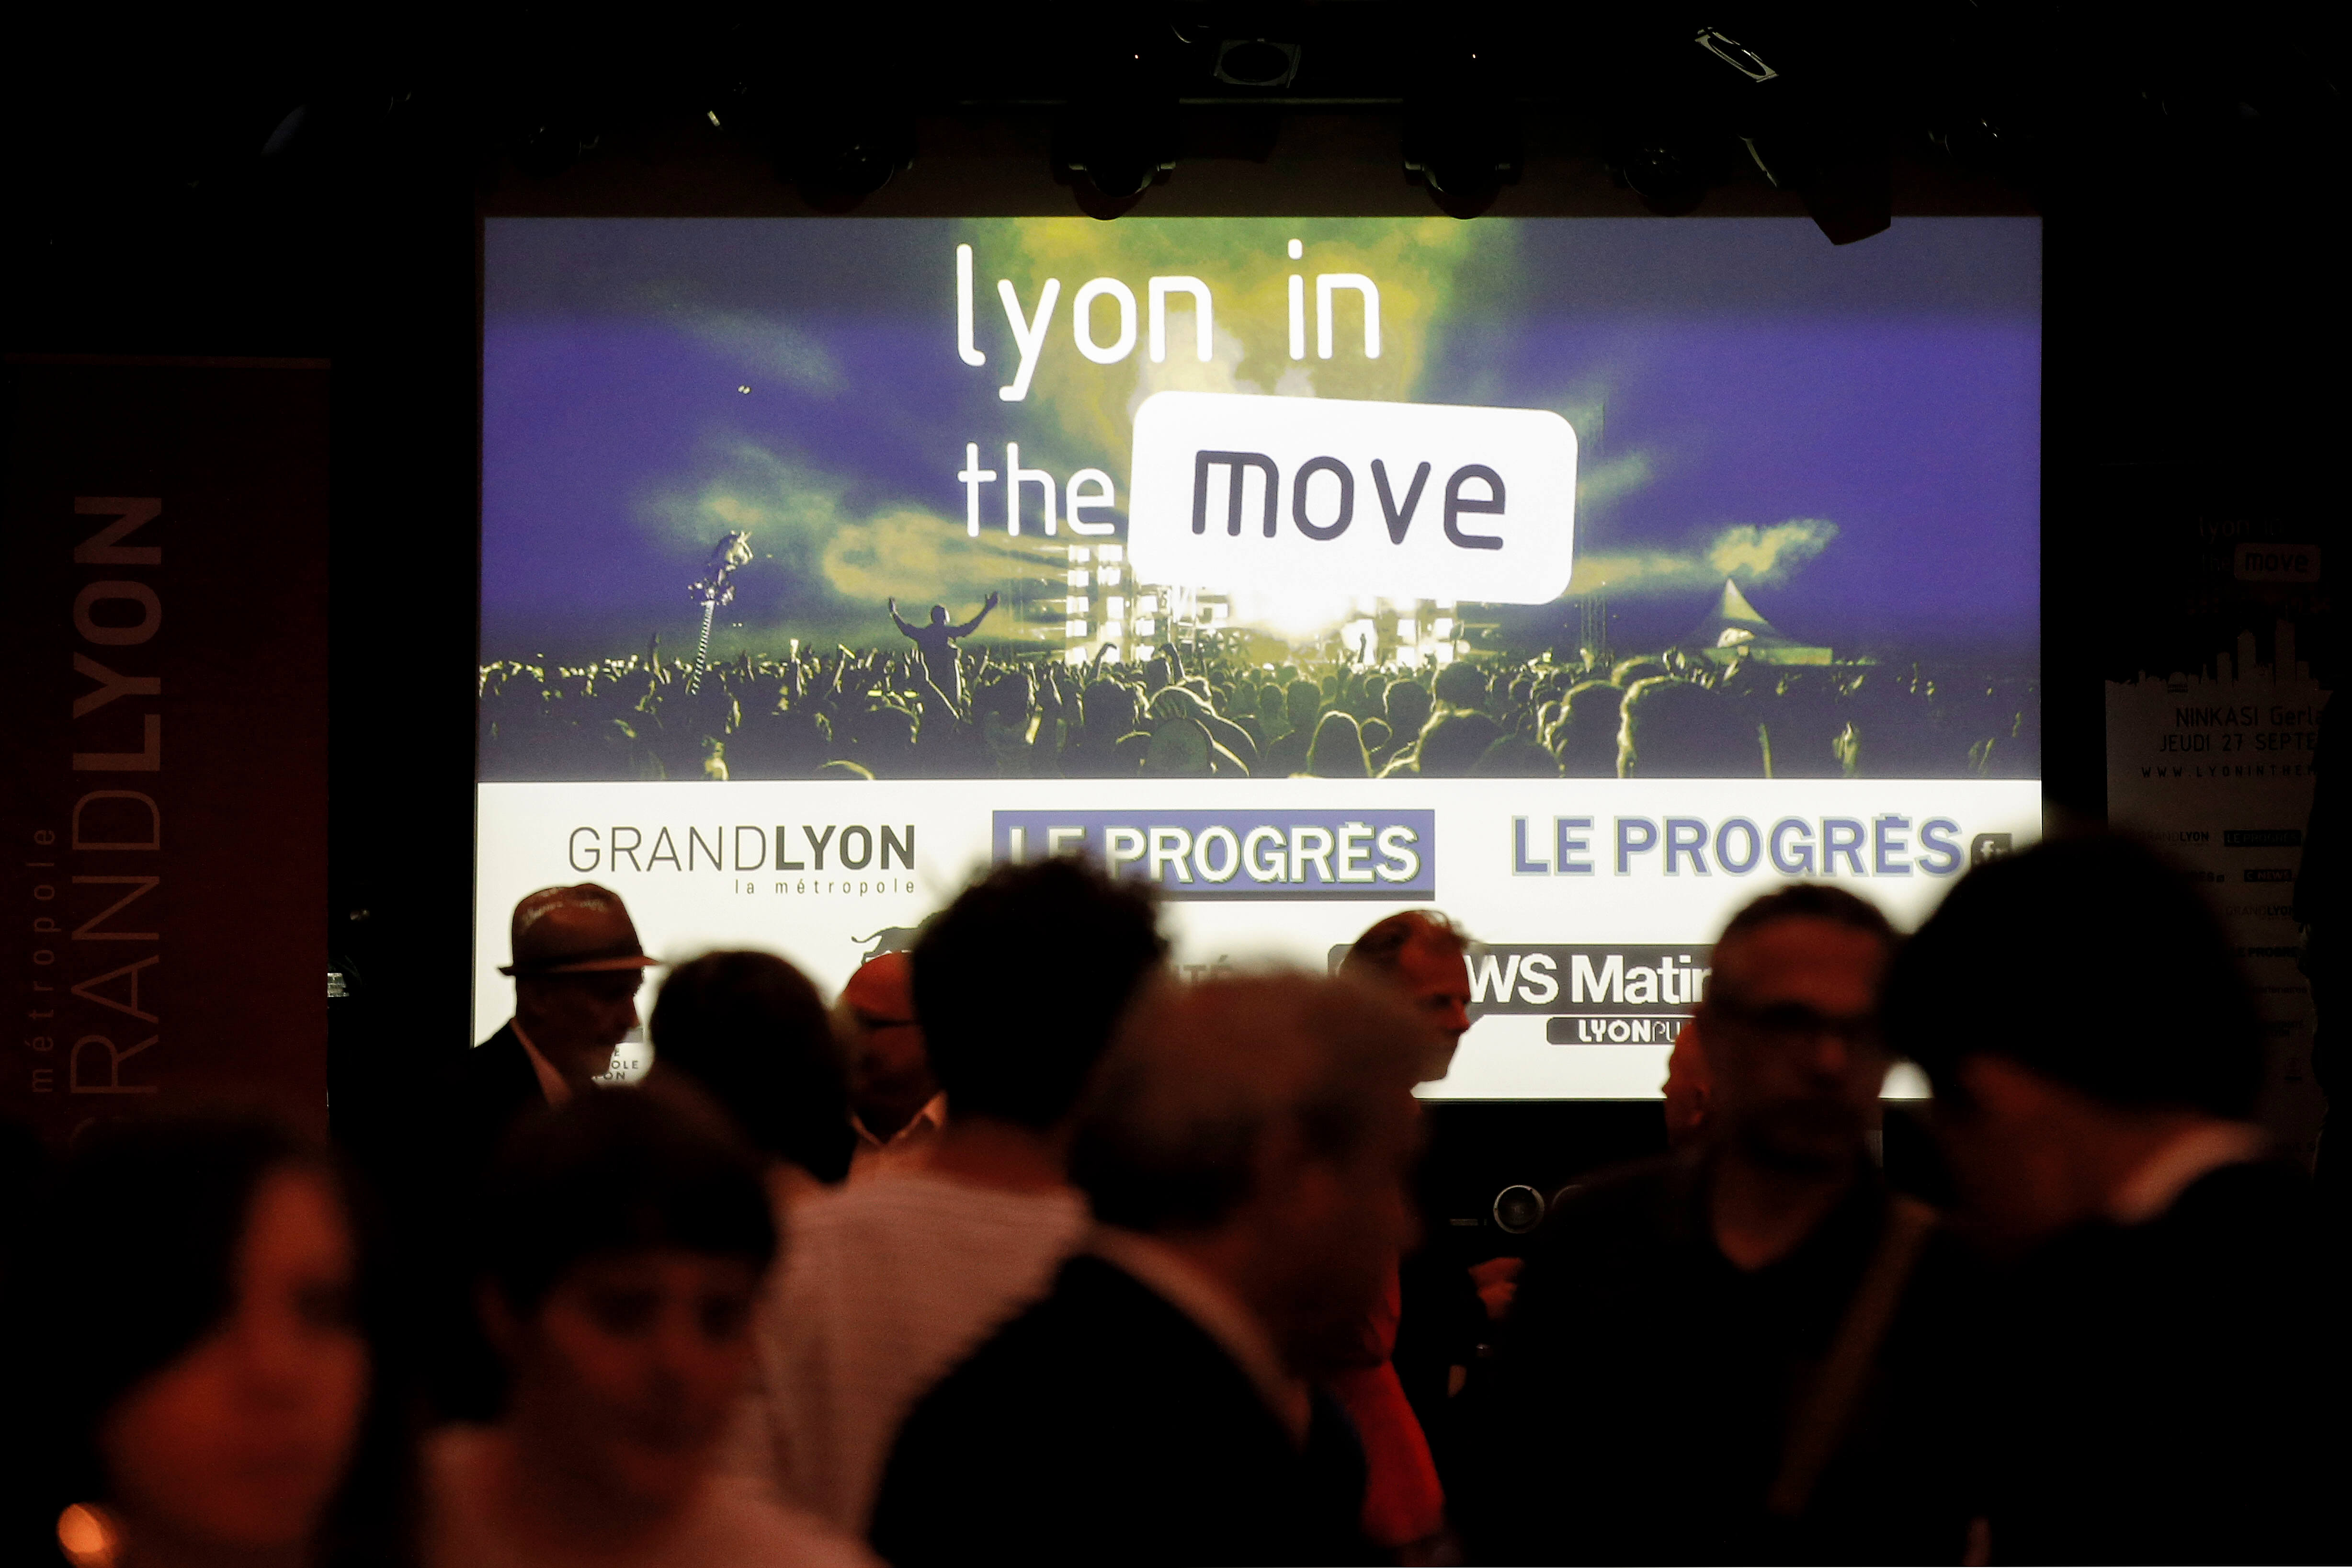 Lyon in the move